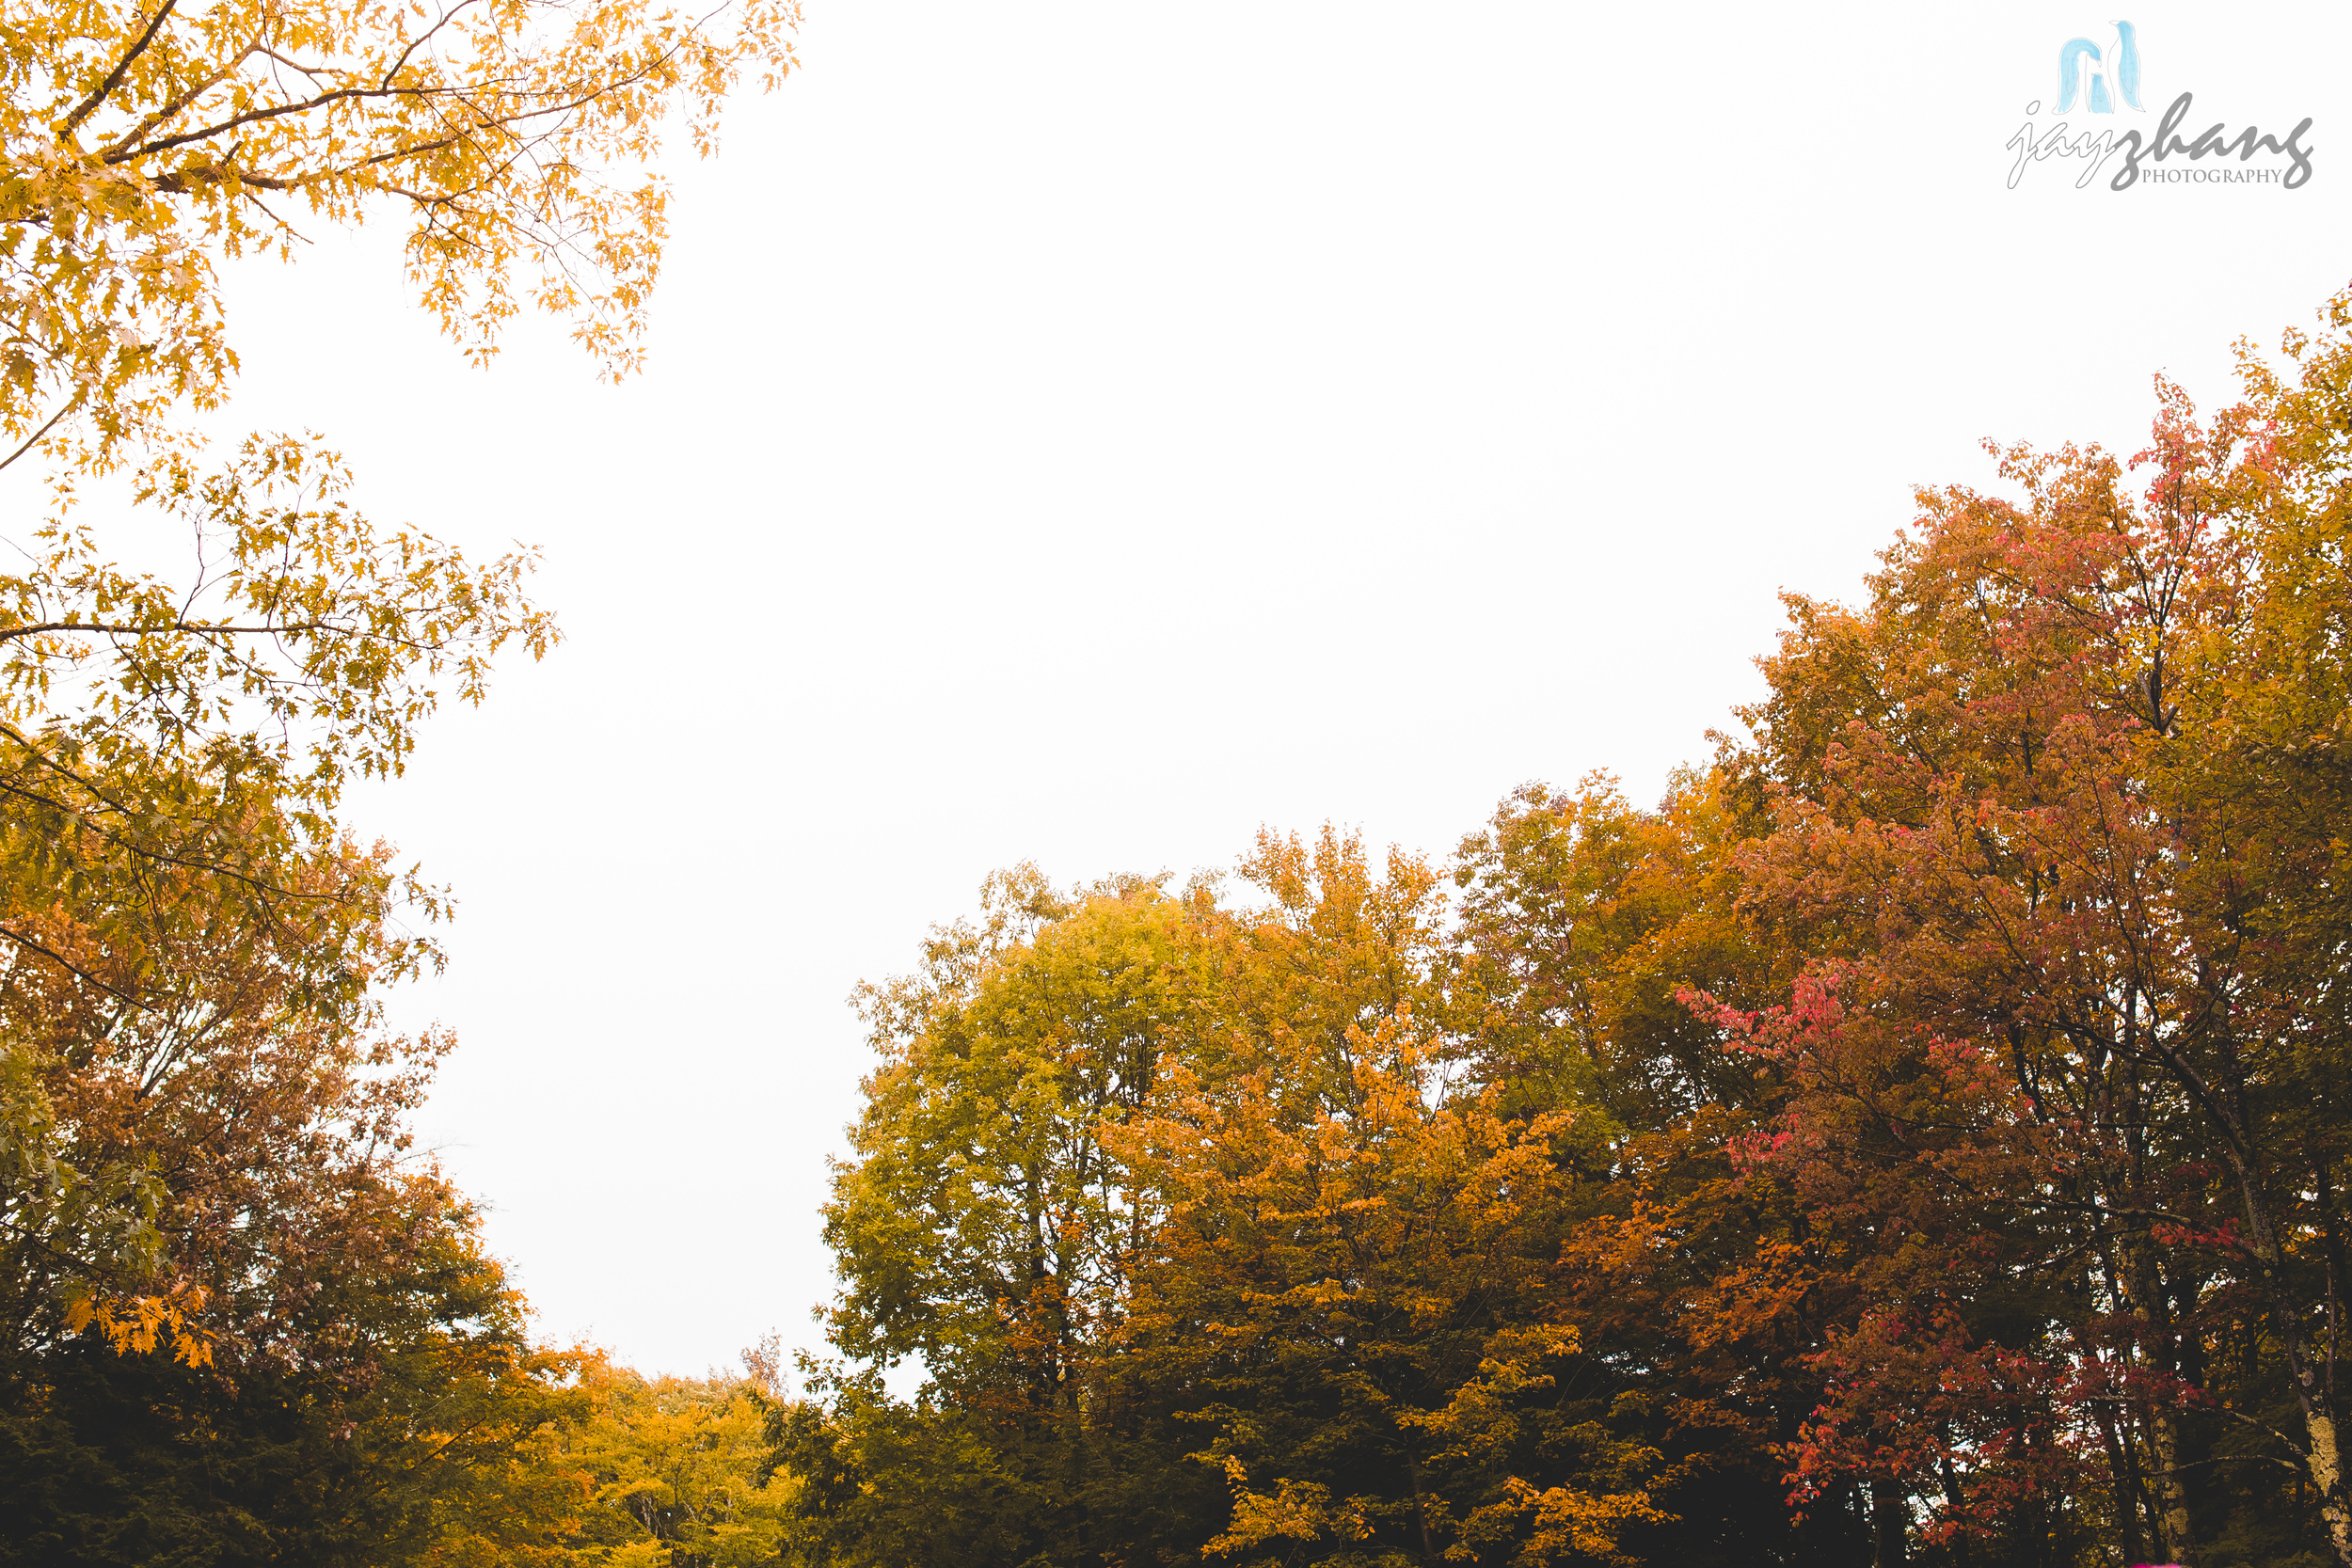 Day 278 - Forest of Colors